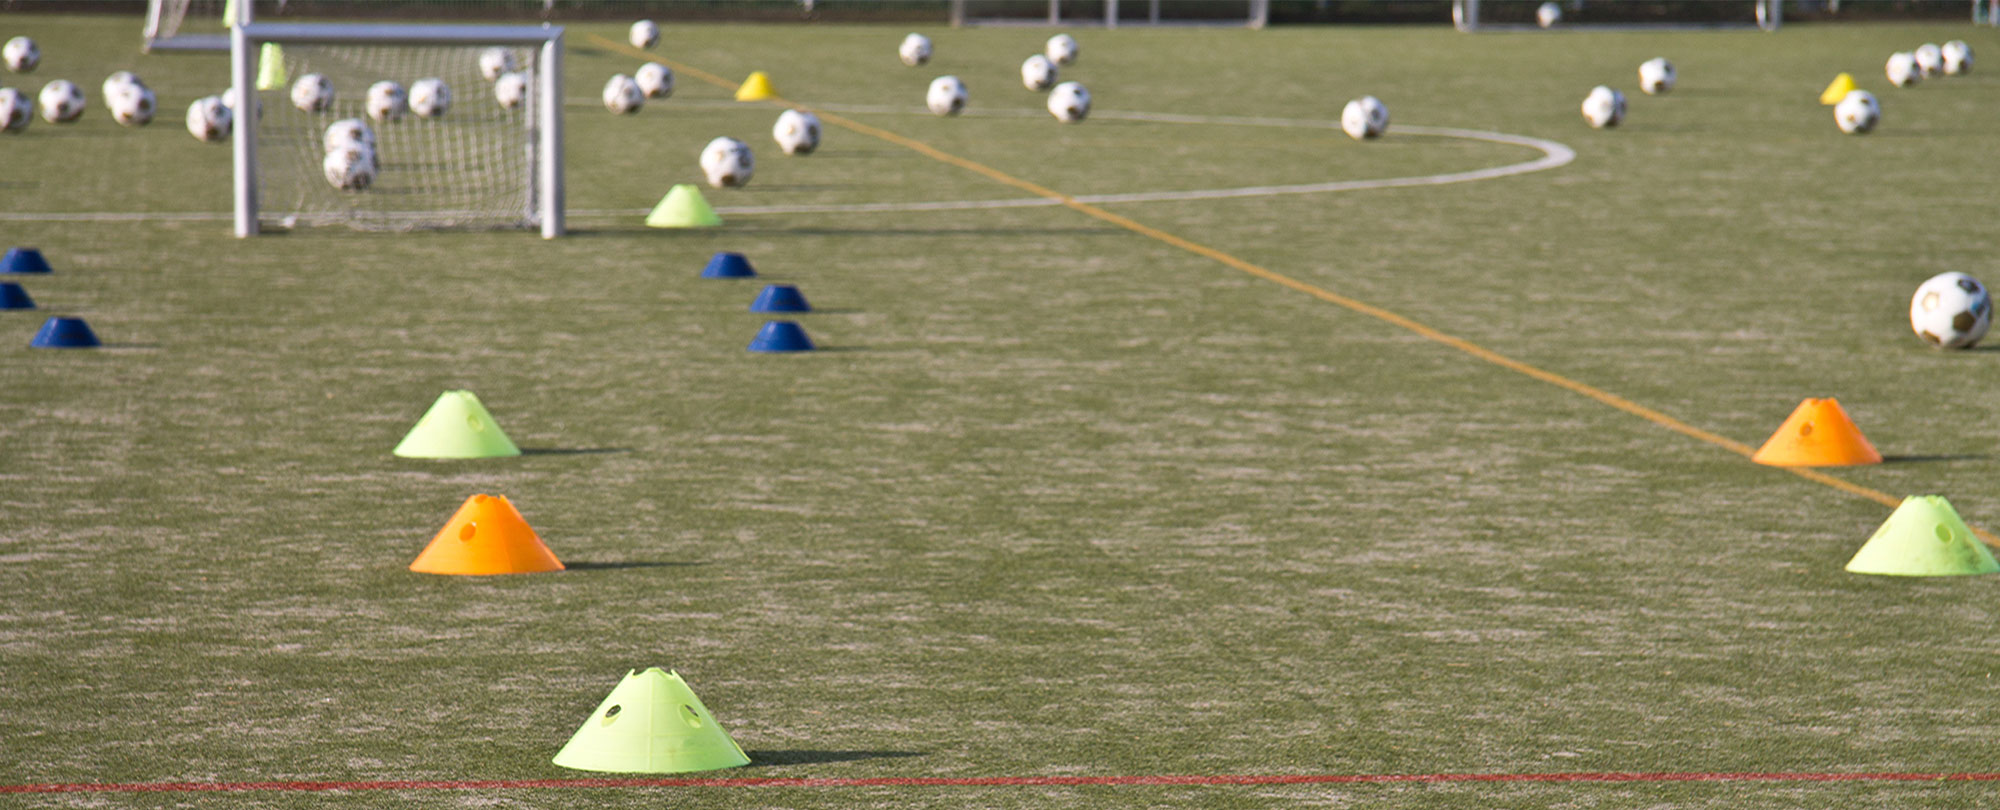 soccer-training-01